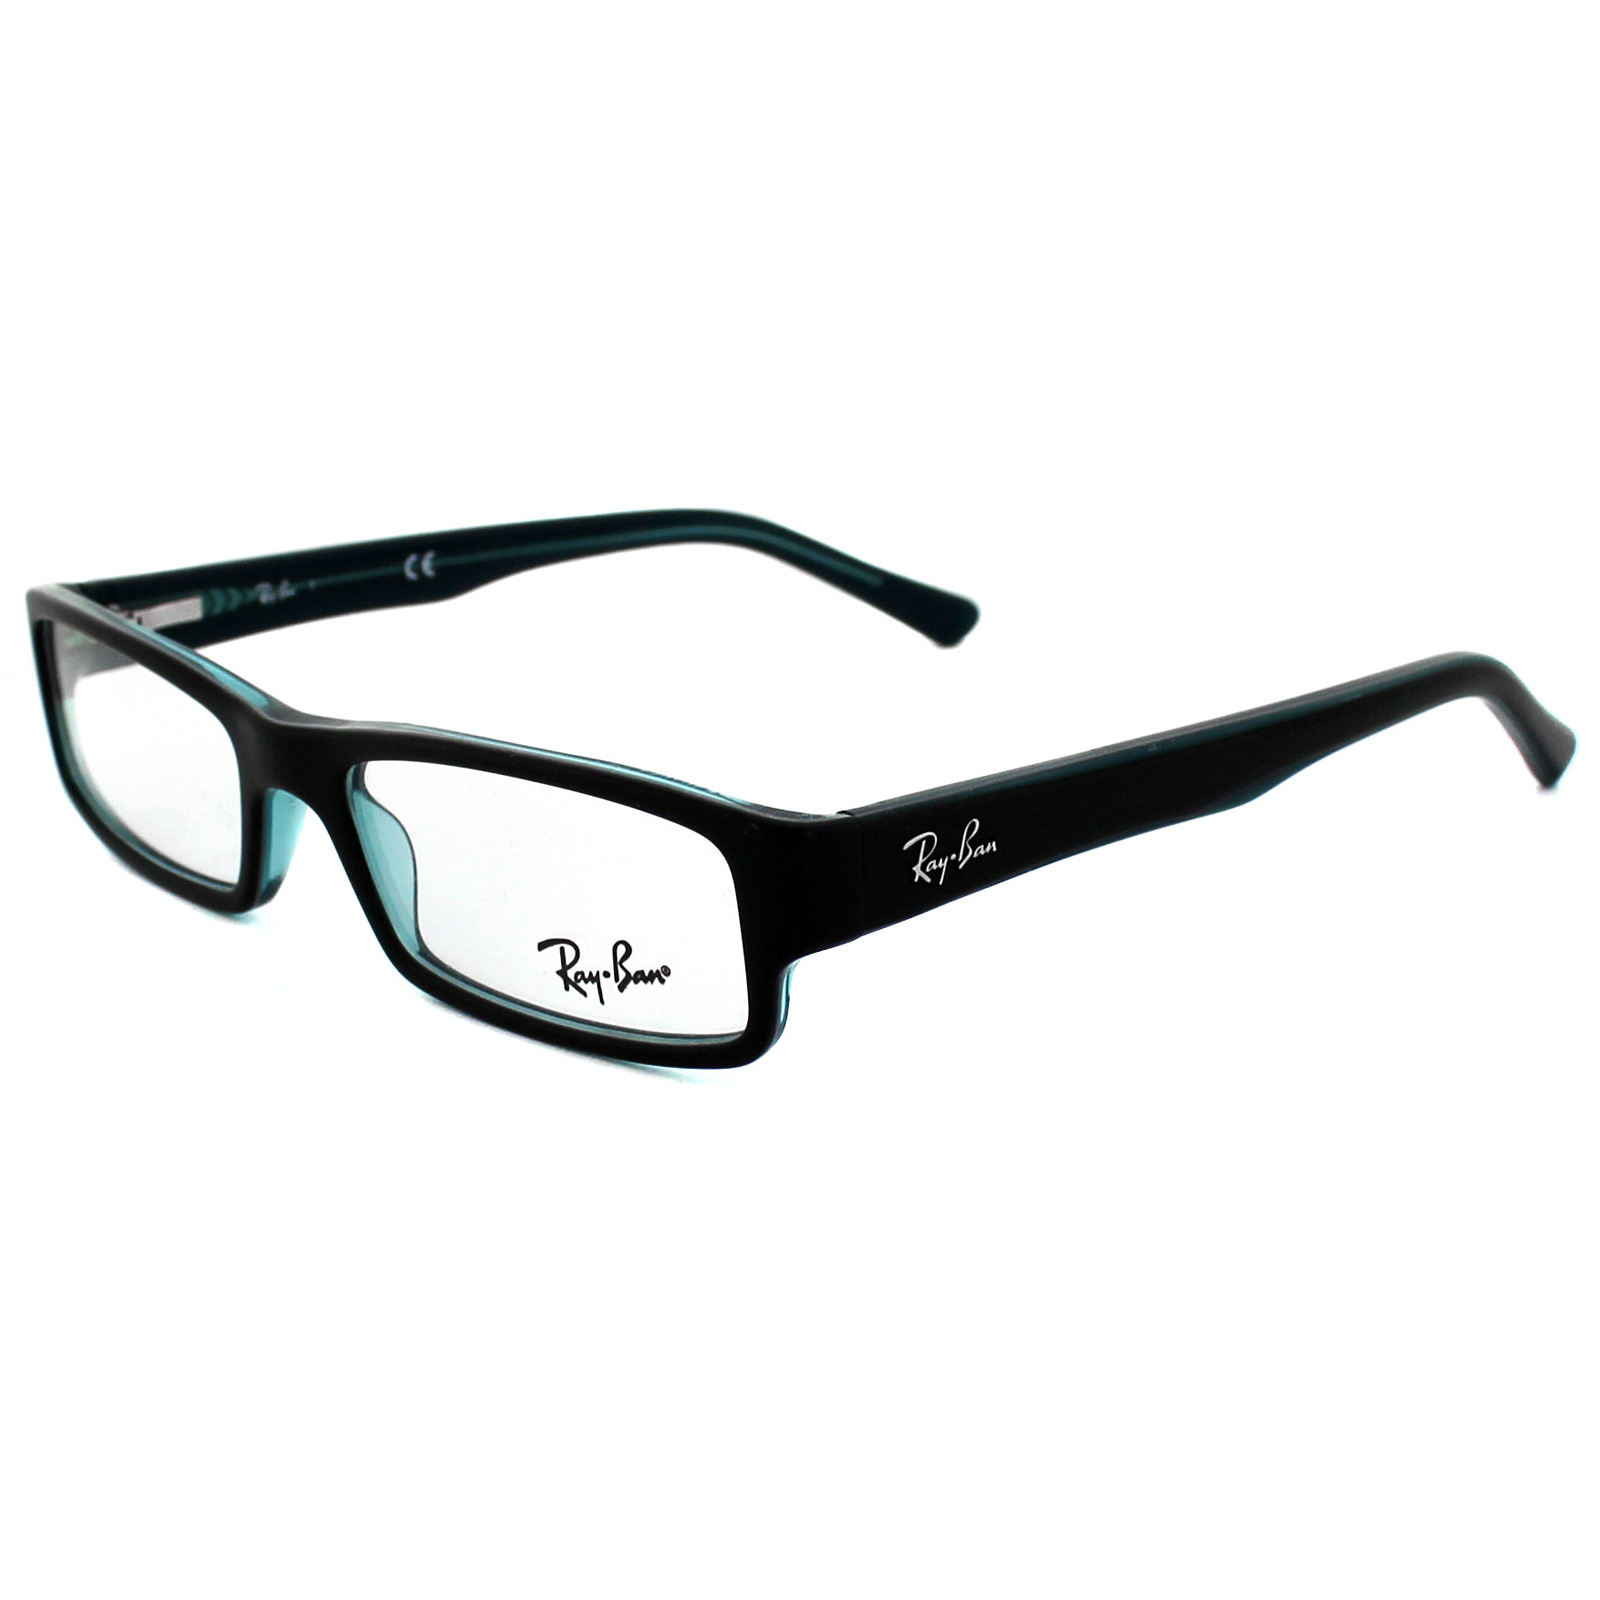 ray ban eyeglass frames catalog  ray ban glasses frames 5246 5092 black grey turquoise